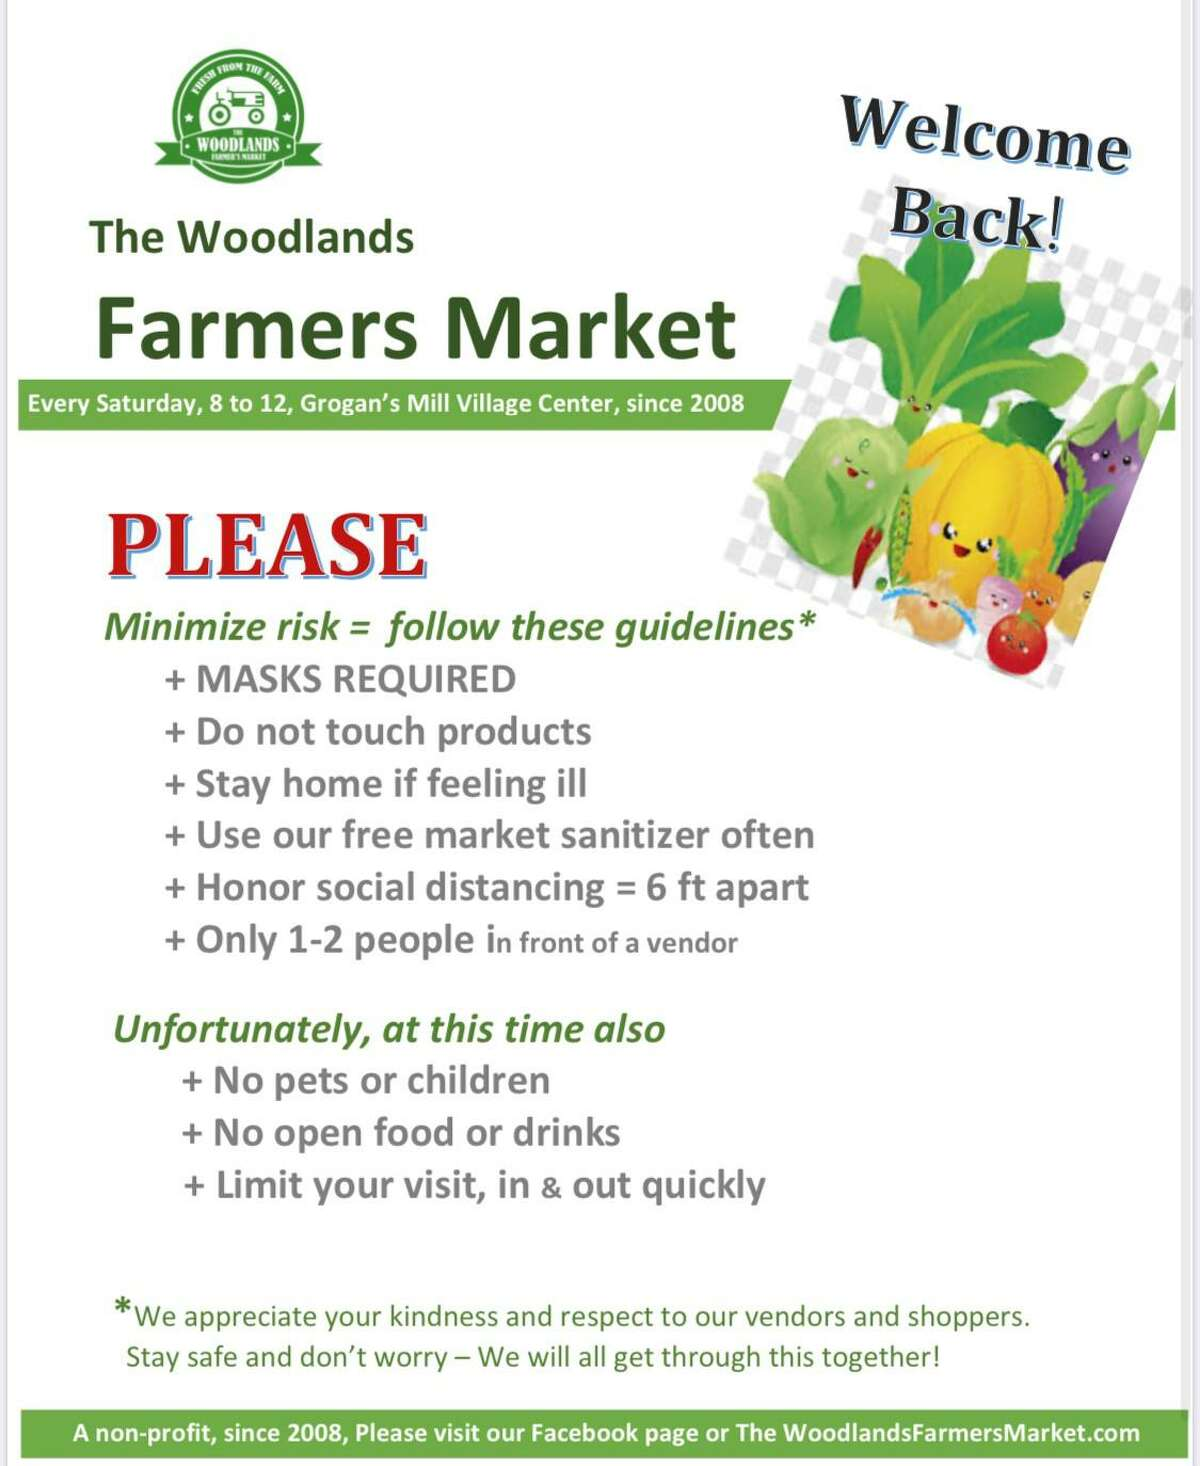 New signs will greet customers at The Woodlands Farmers Market when it reopens on Saturday, May 23. Many new changes are in effect, including mandatory face masks and a ban on children and pets.